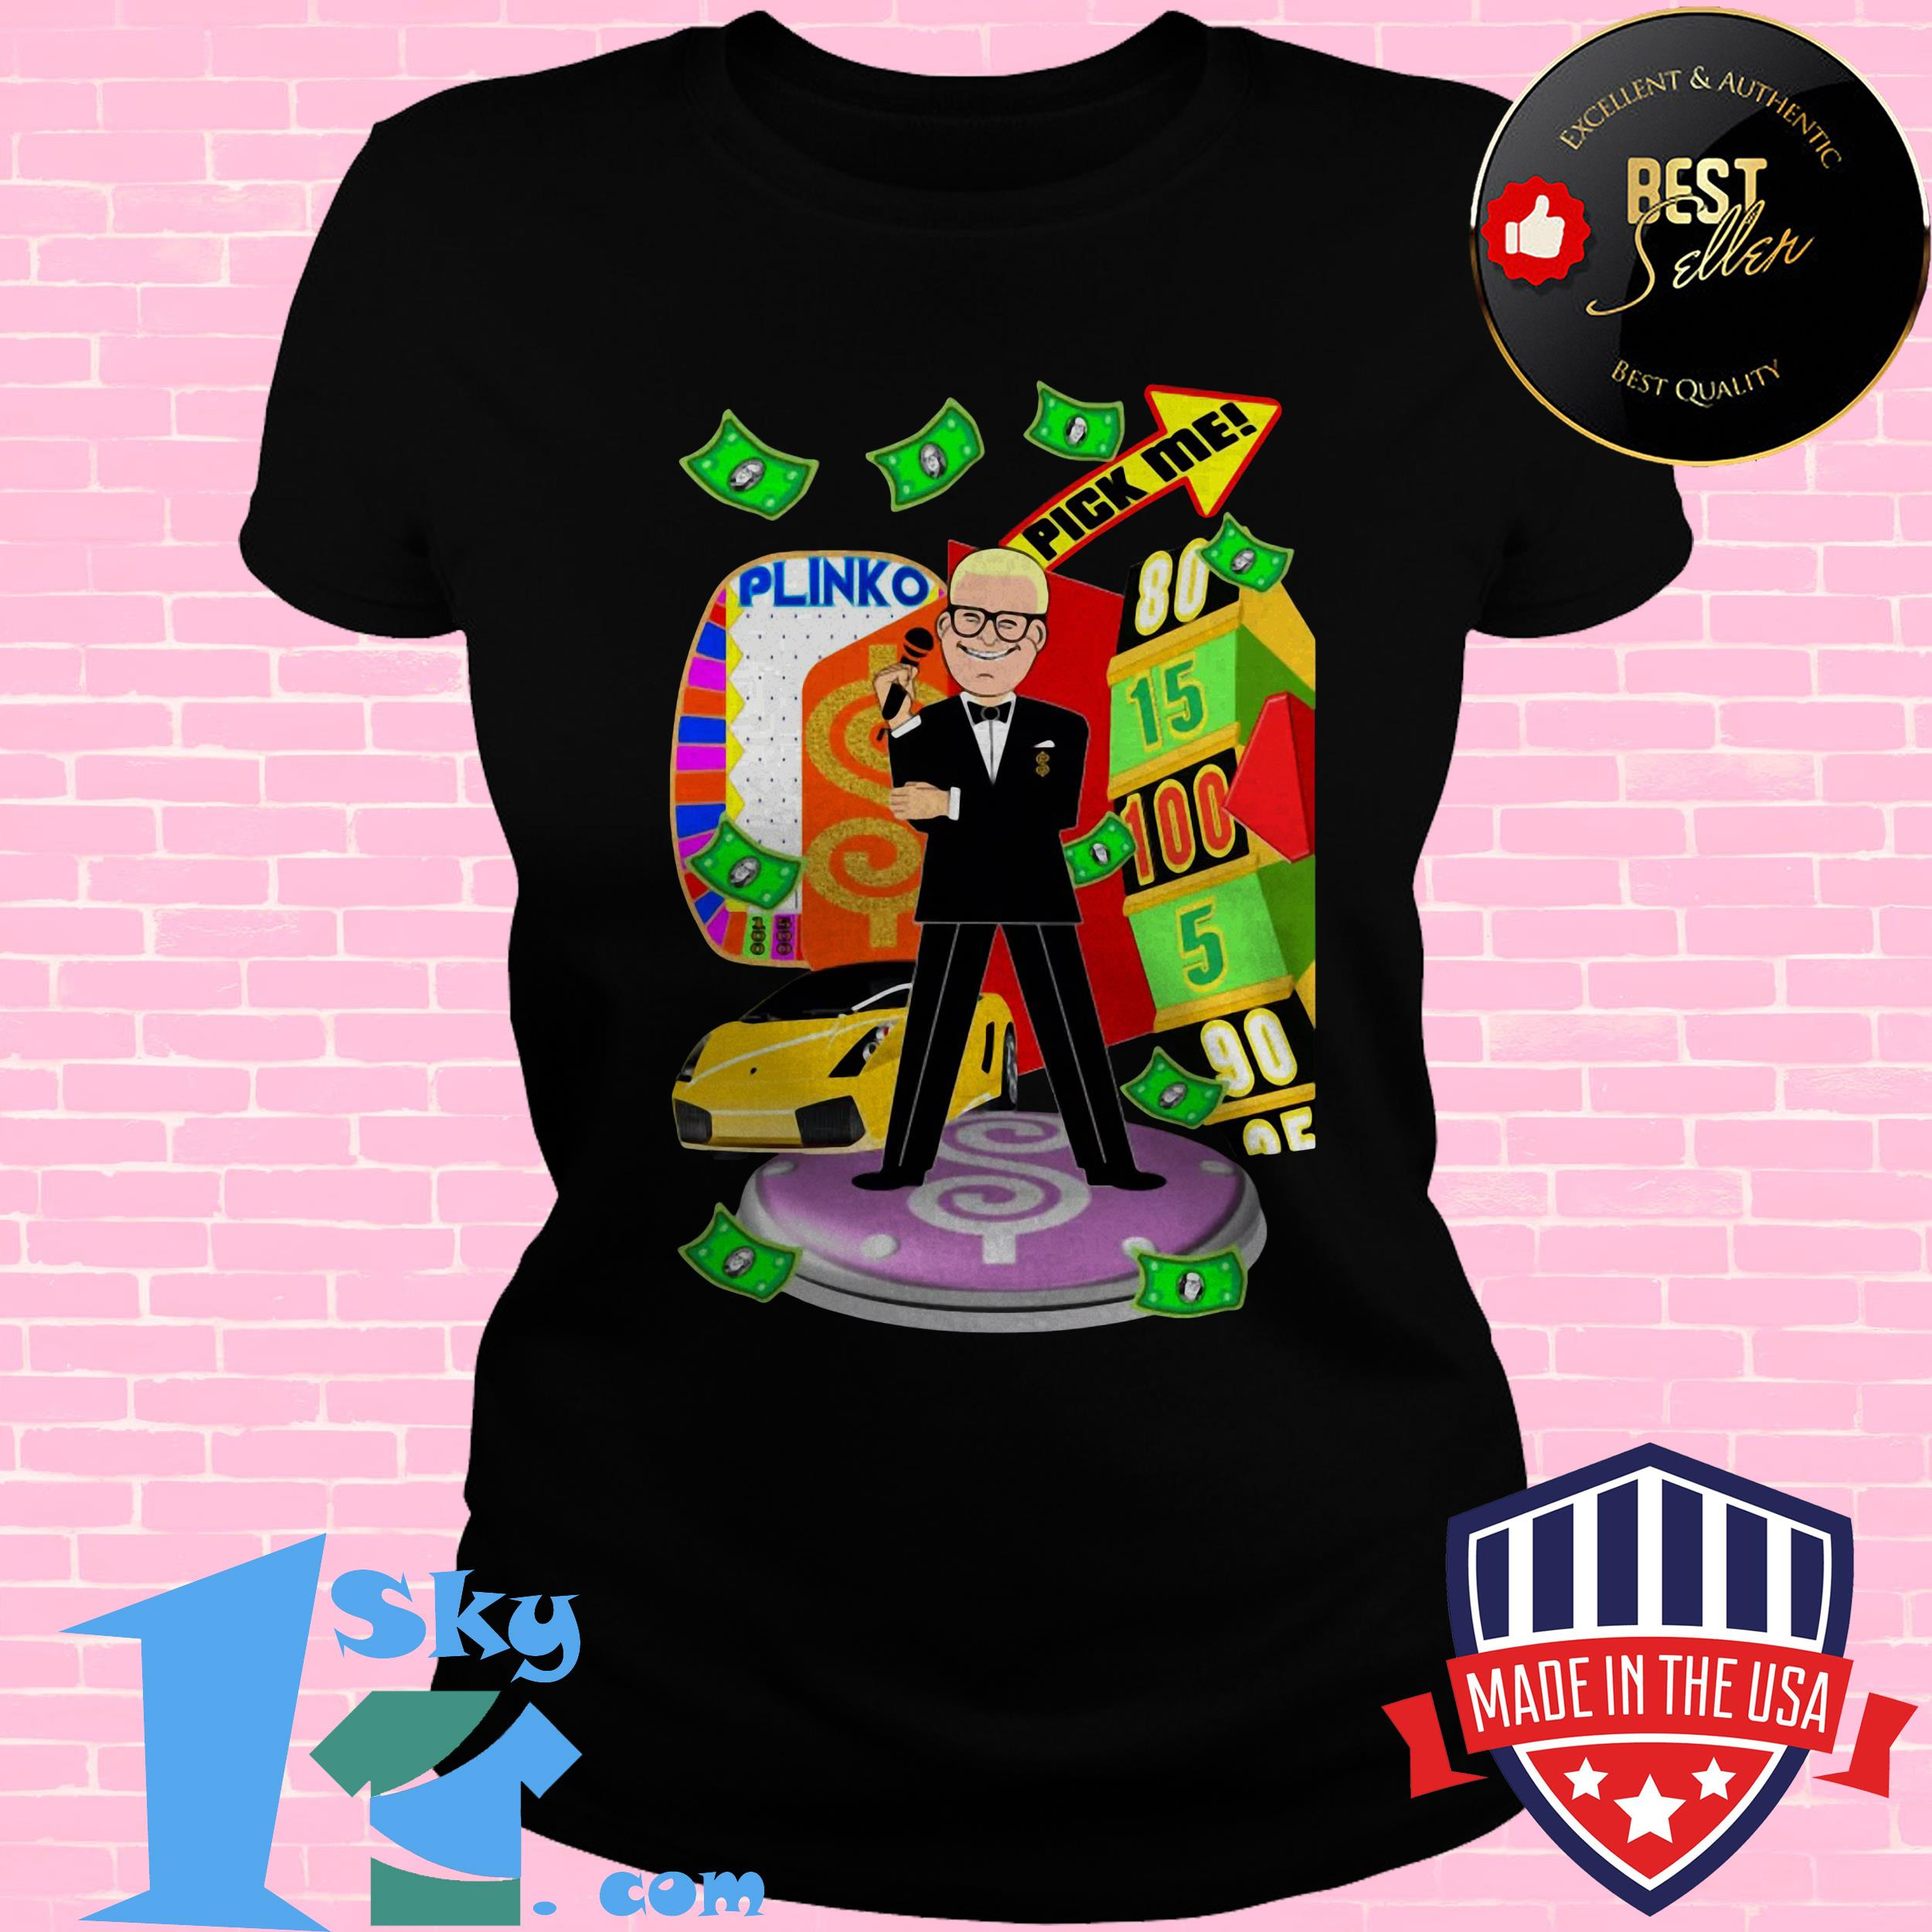 the price is right game show contestant ladies tee - The Price Is Right Game Show Contestant shirt